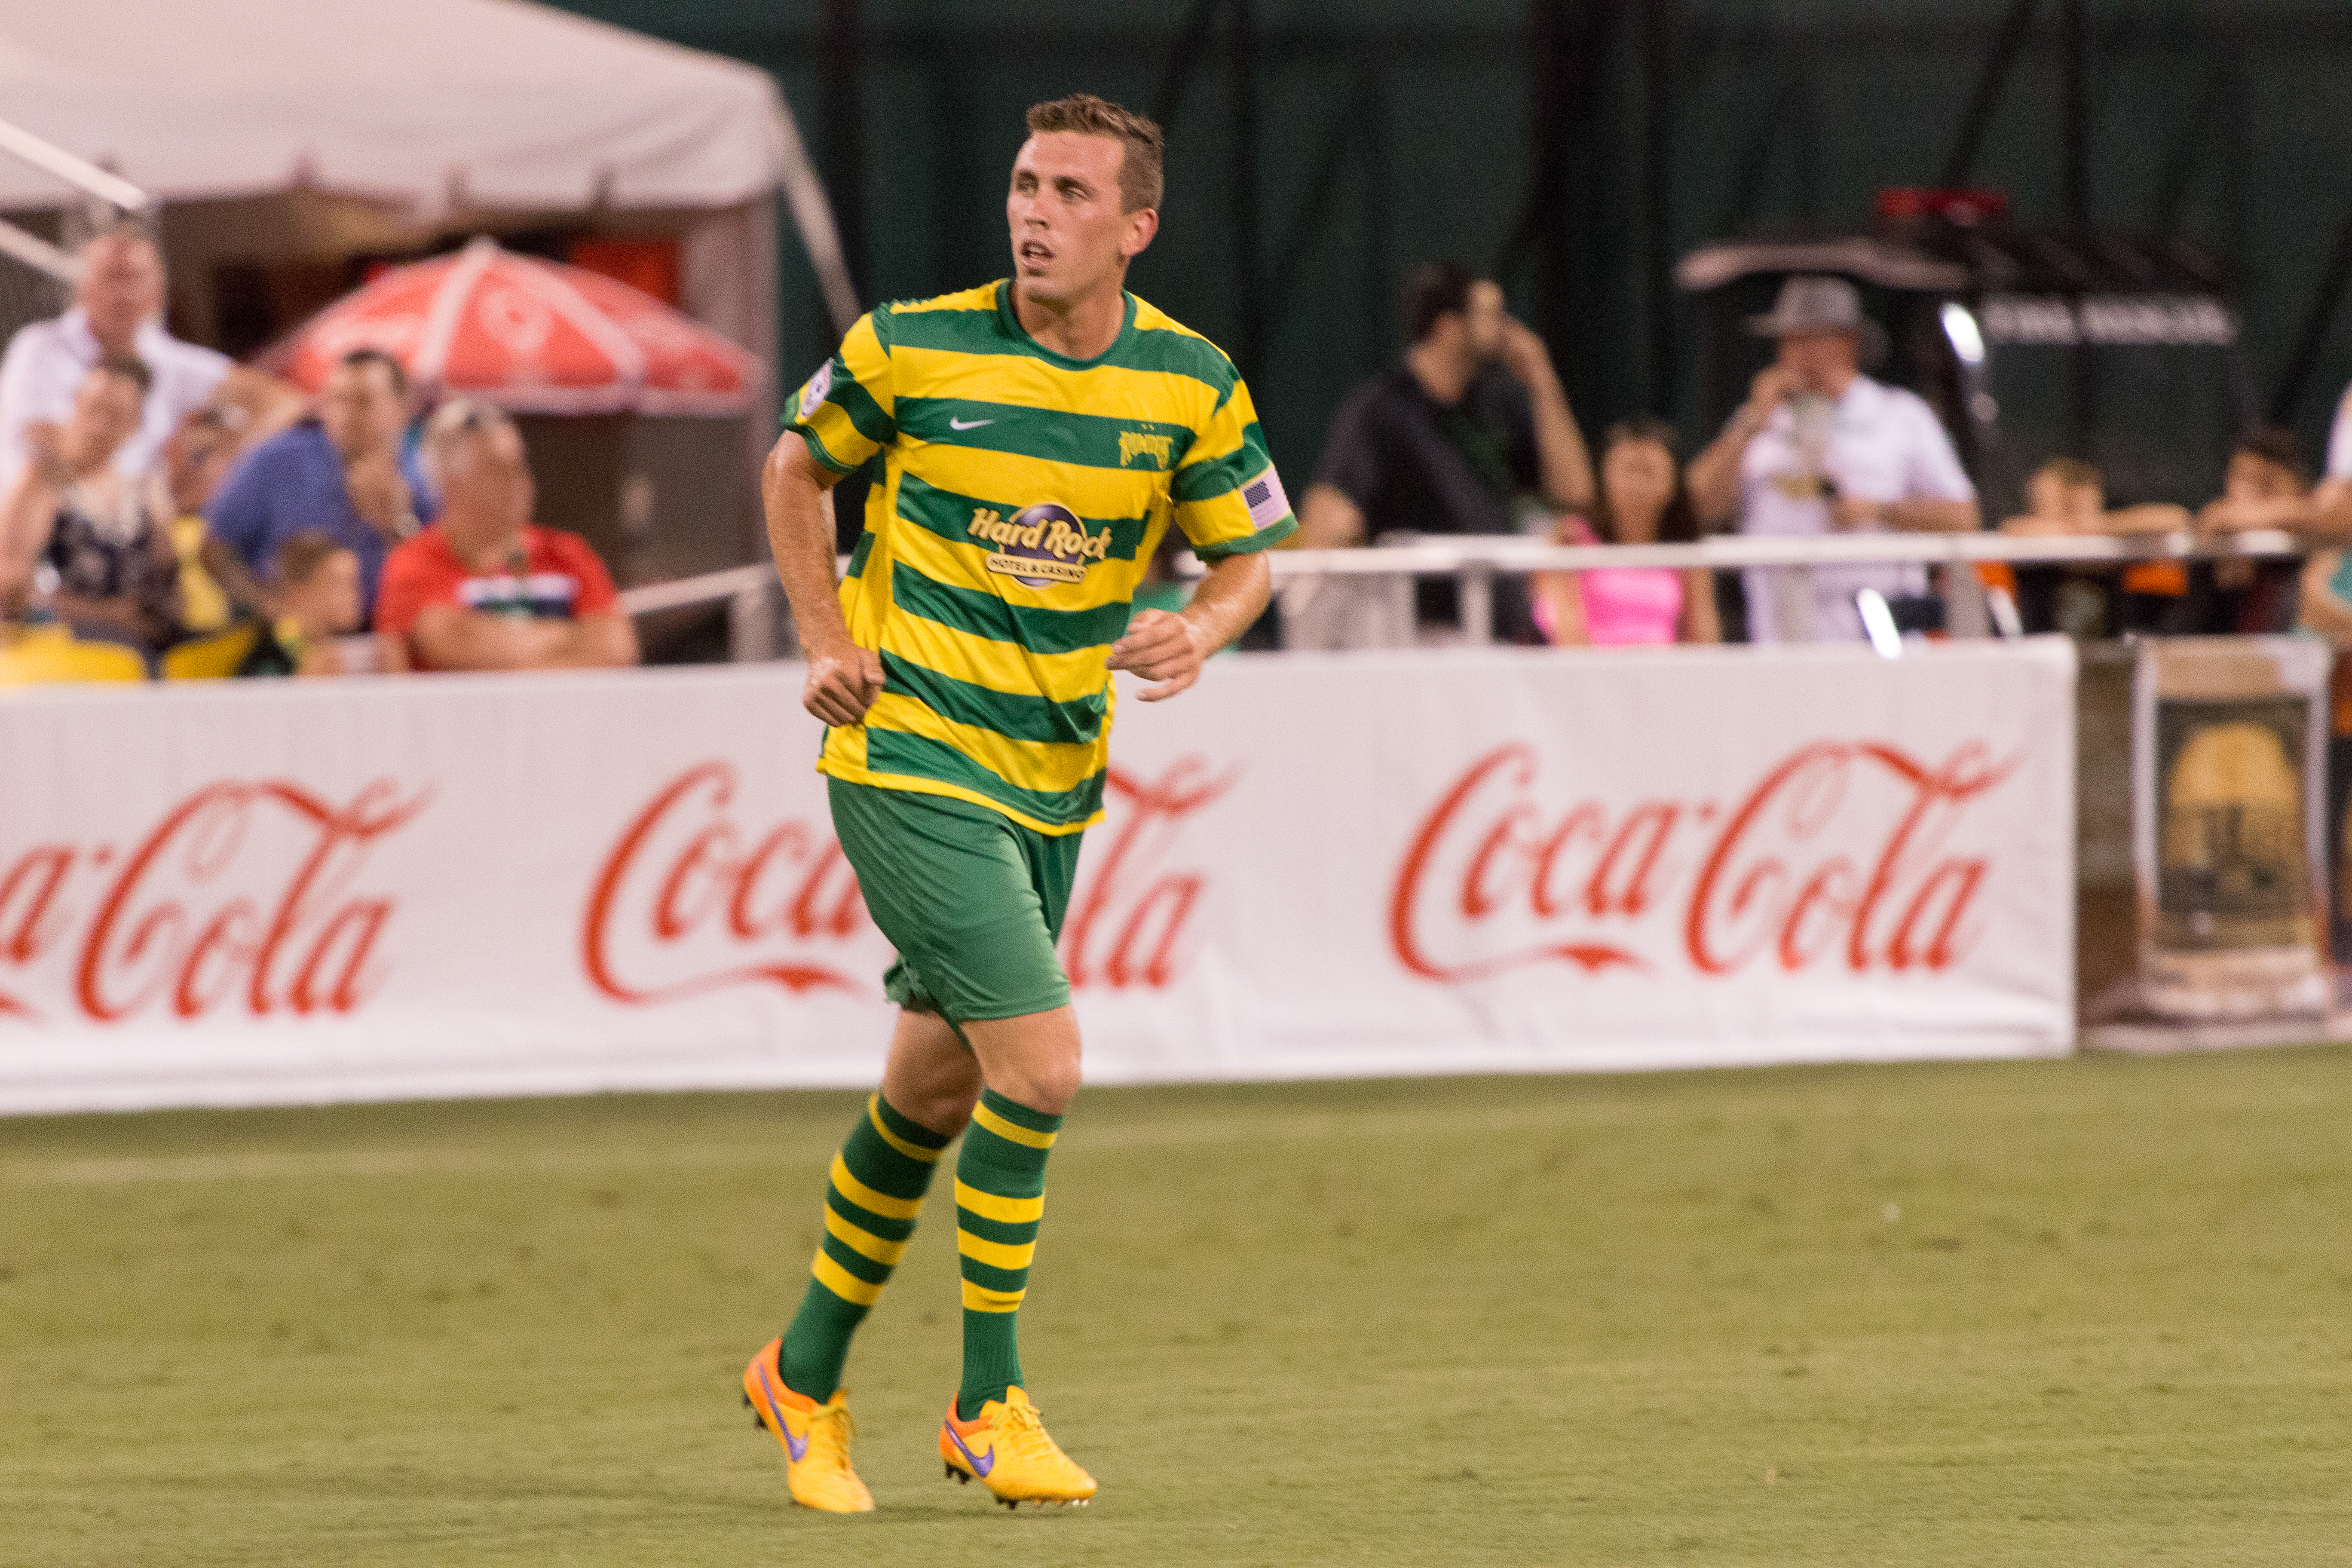 Hertzog scored the first goal for the Rowdies./JEFFREY S. KING